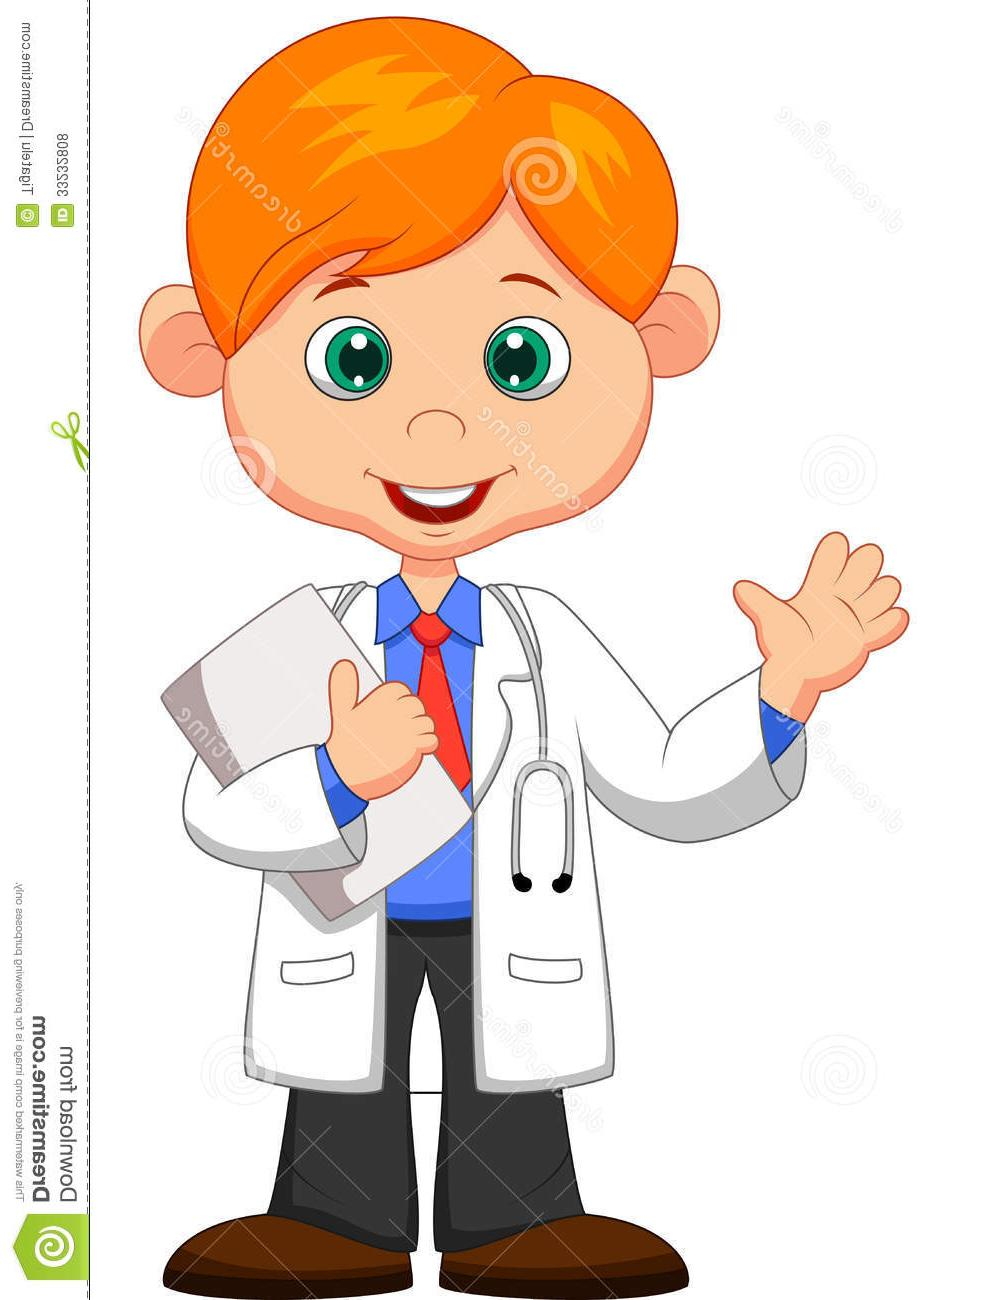 Doctors clipart animated, Doctors animated Transparent FREE.